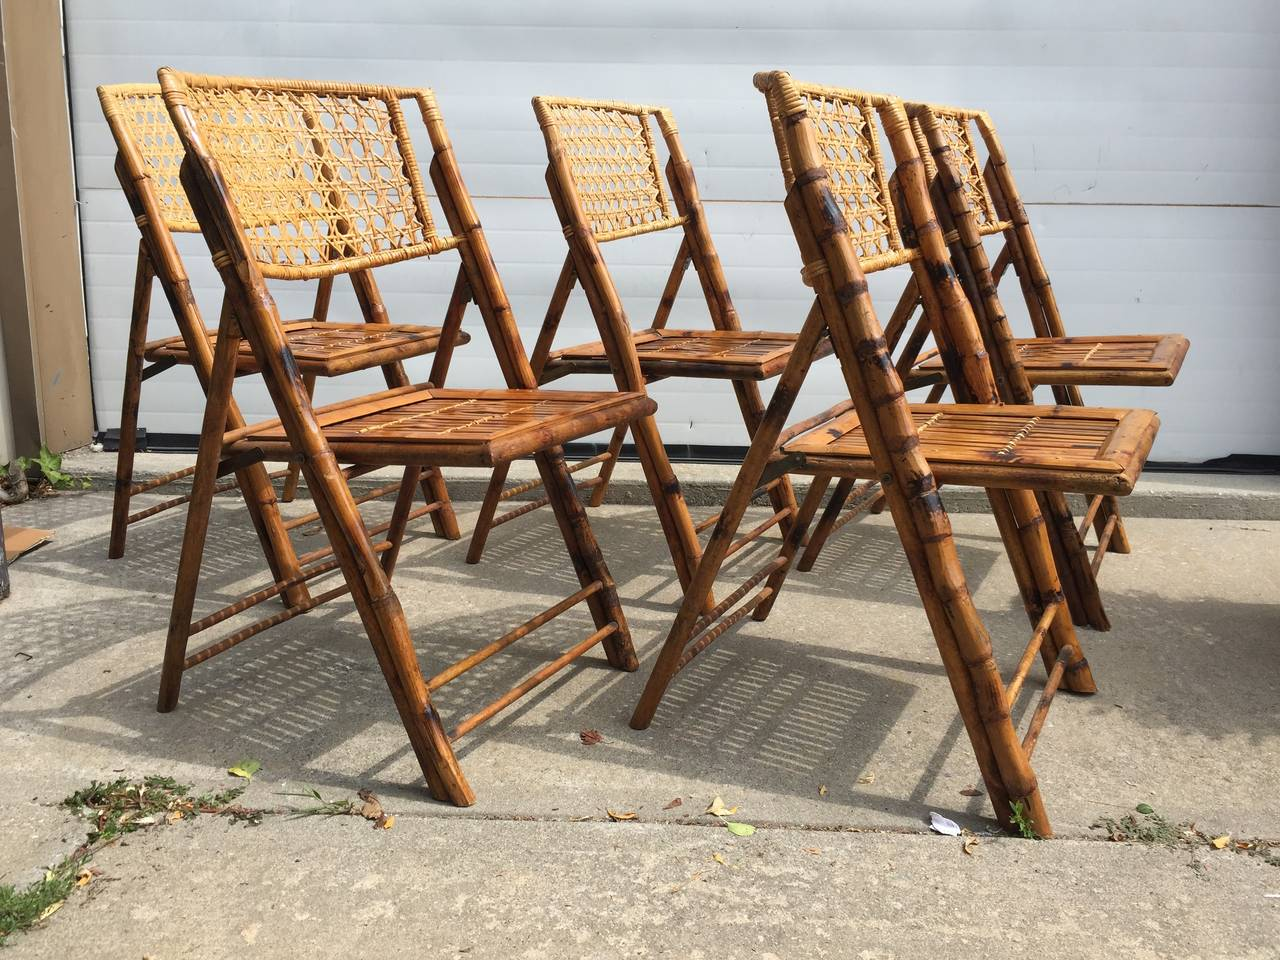 Set Of Five Scorched Bamboo Frame Folding Chairs With Rattan Seat And Back